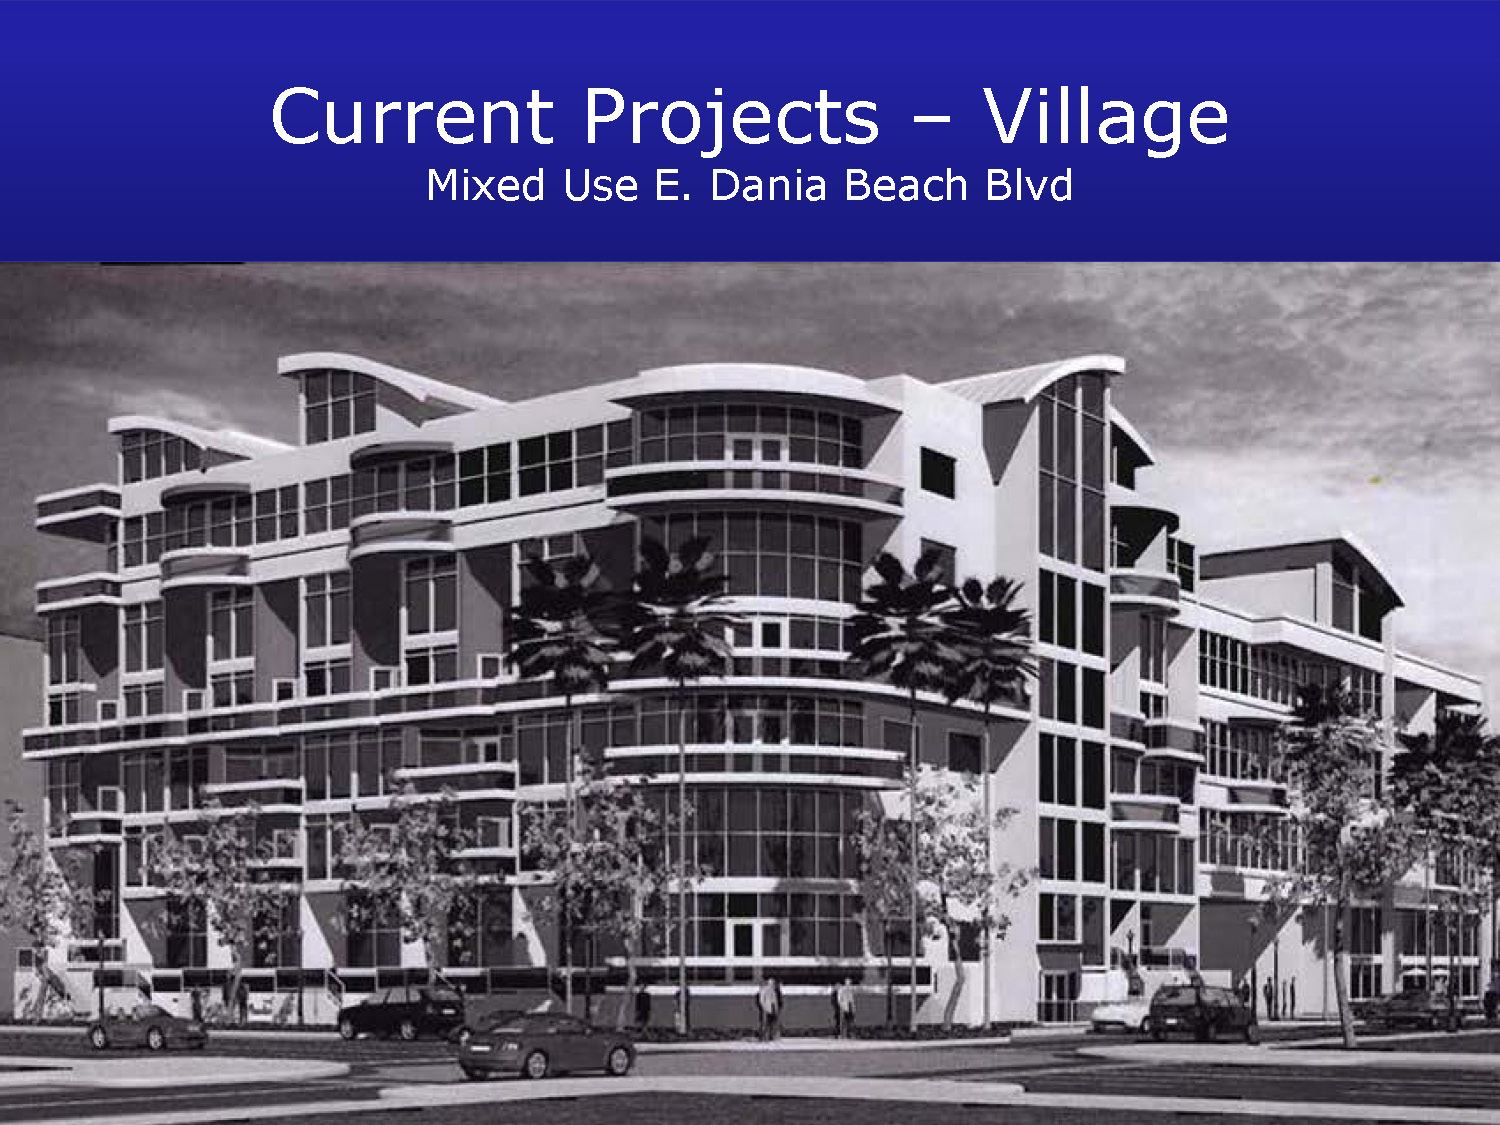 Village Dania Beach Private Development